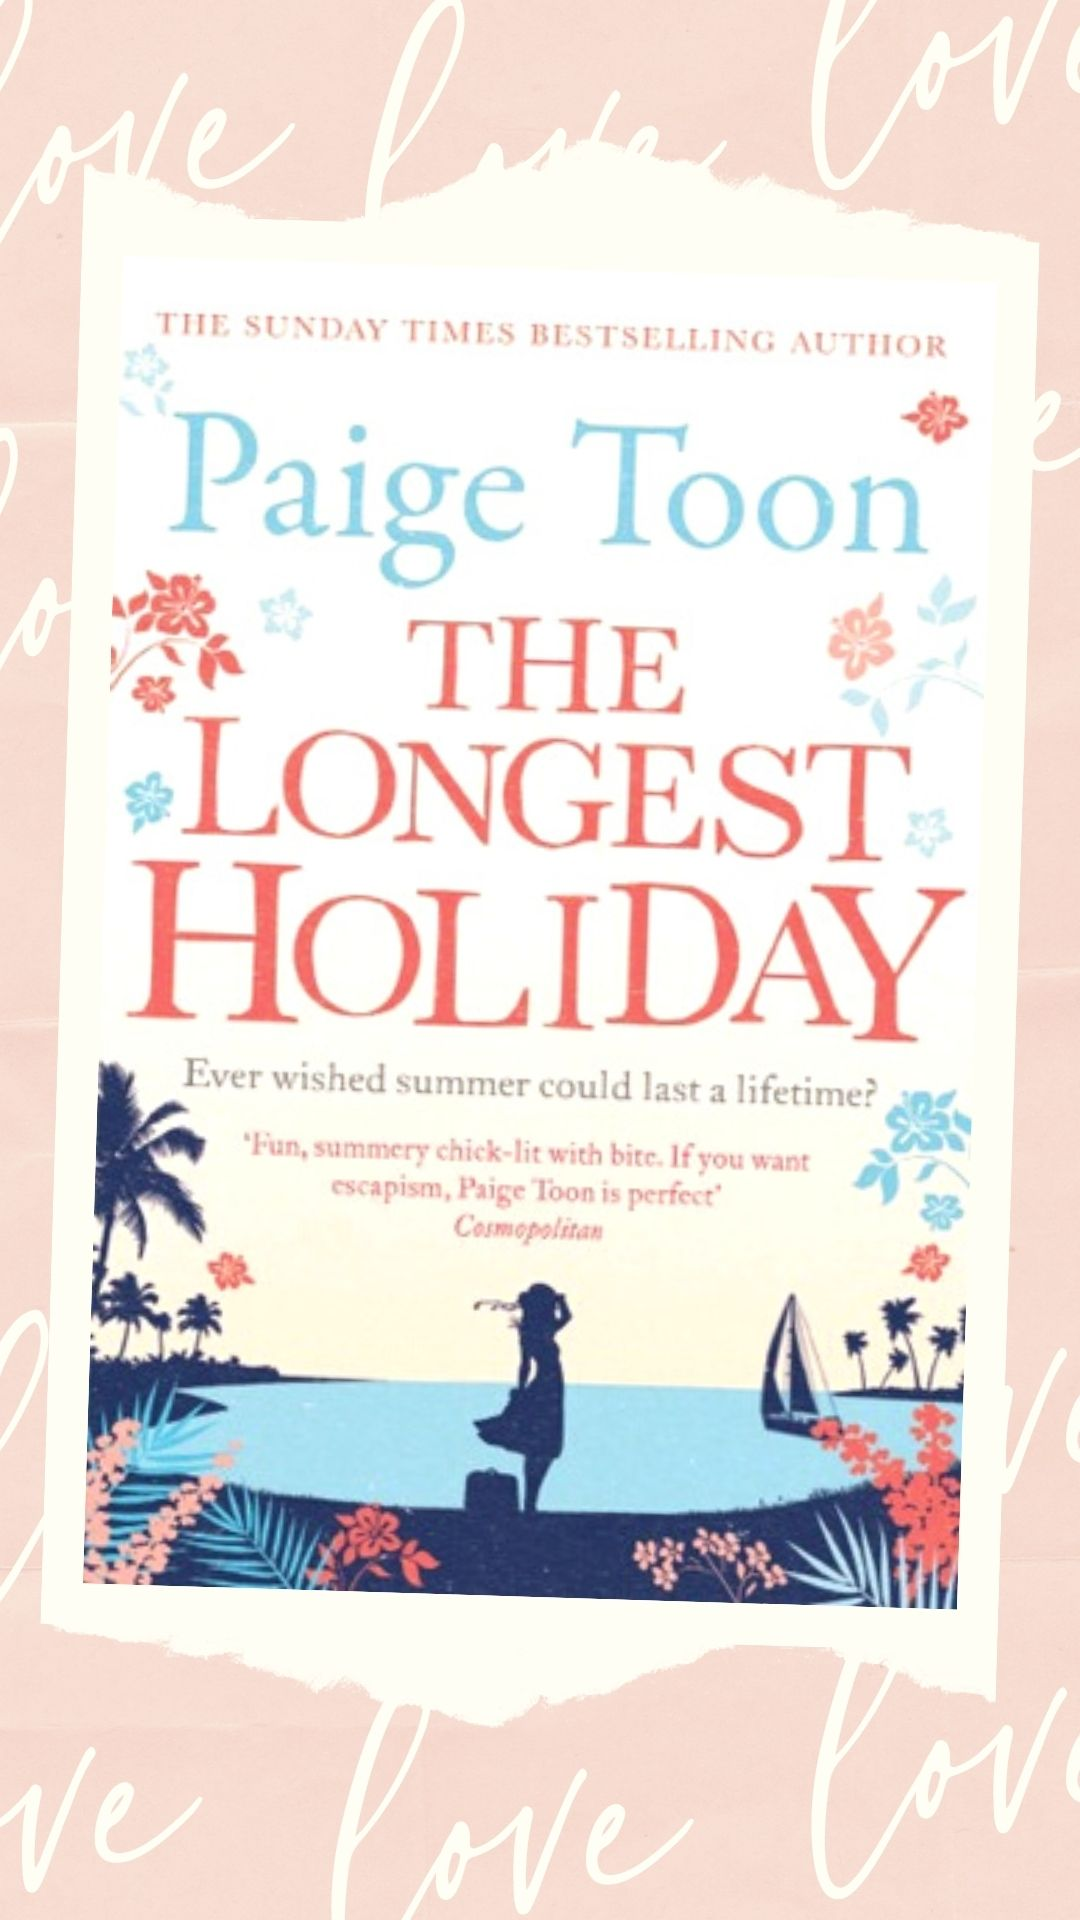 The Longest Holiday by Paige Toon book cover